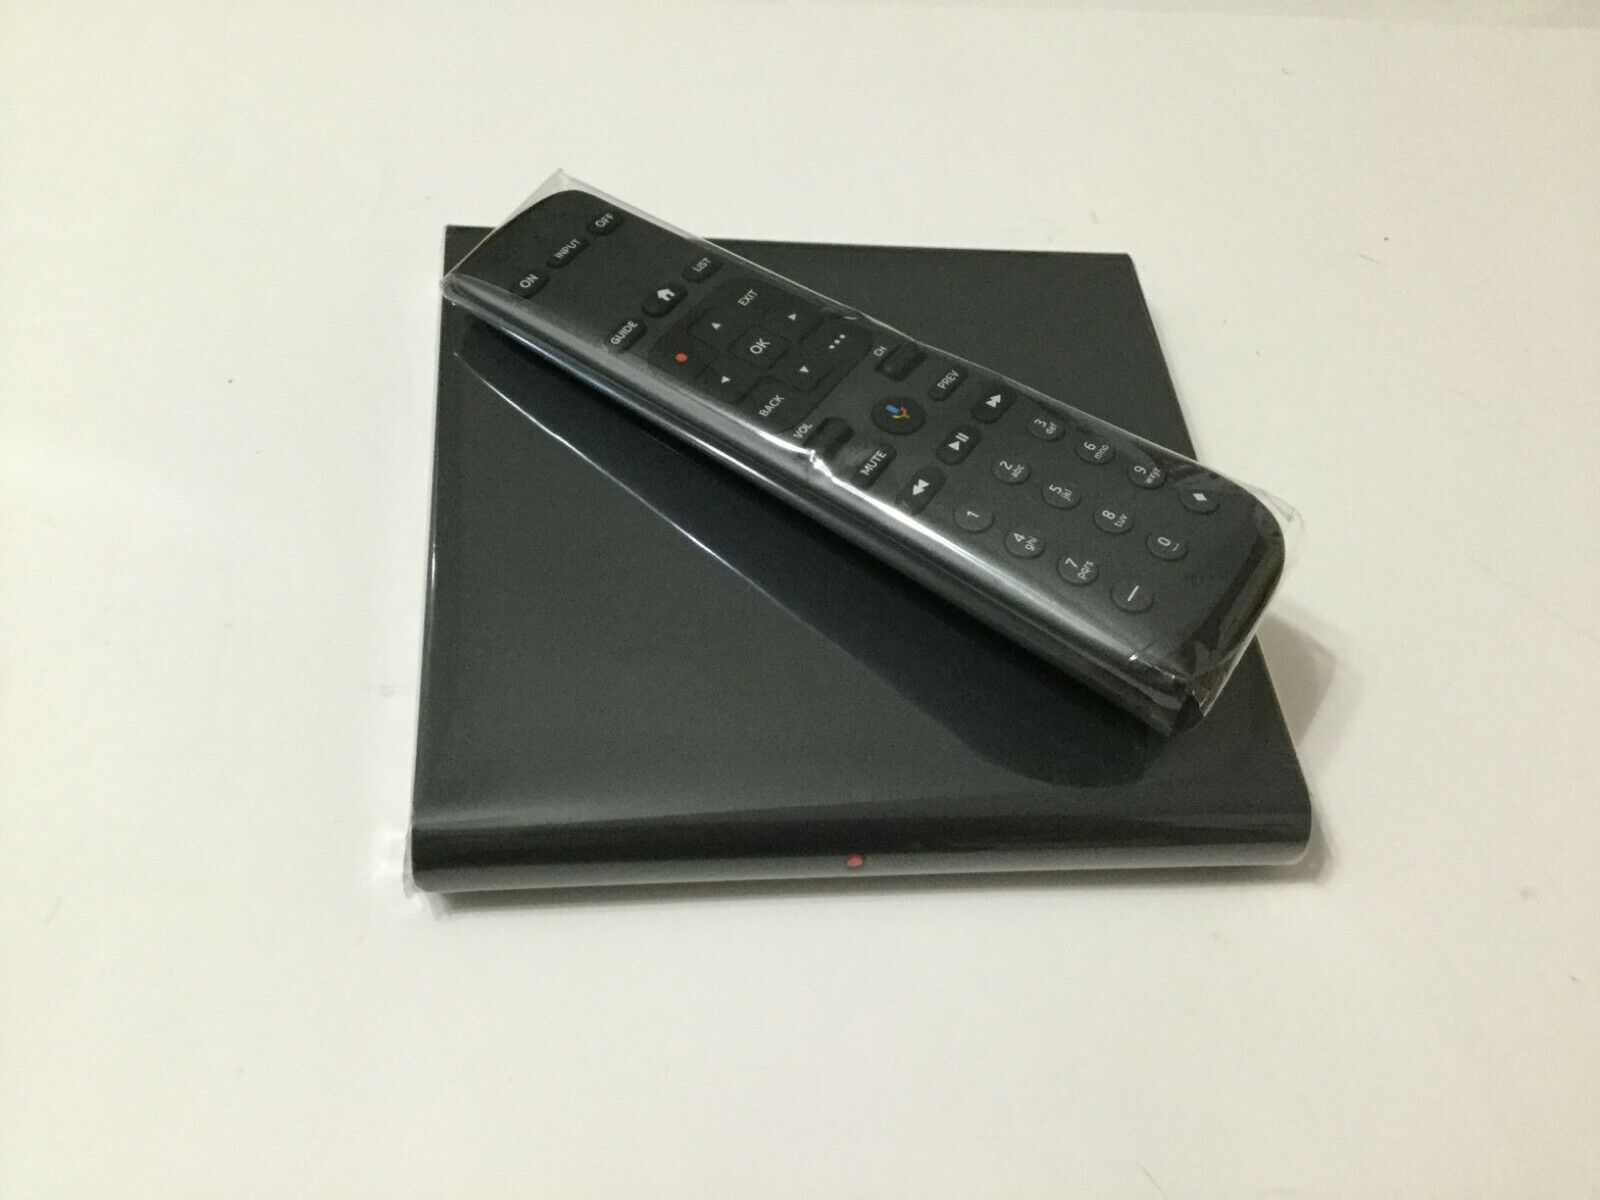 NEW AT&T DirectTV Streaming Player Osprey Android Beta Box + Remote (C71KW-200) android beta box directtv new osprey player remote streaming